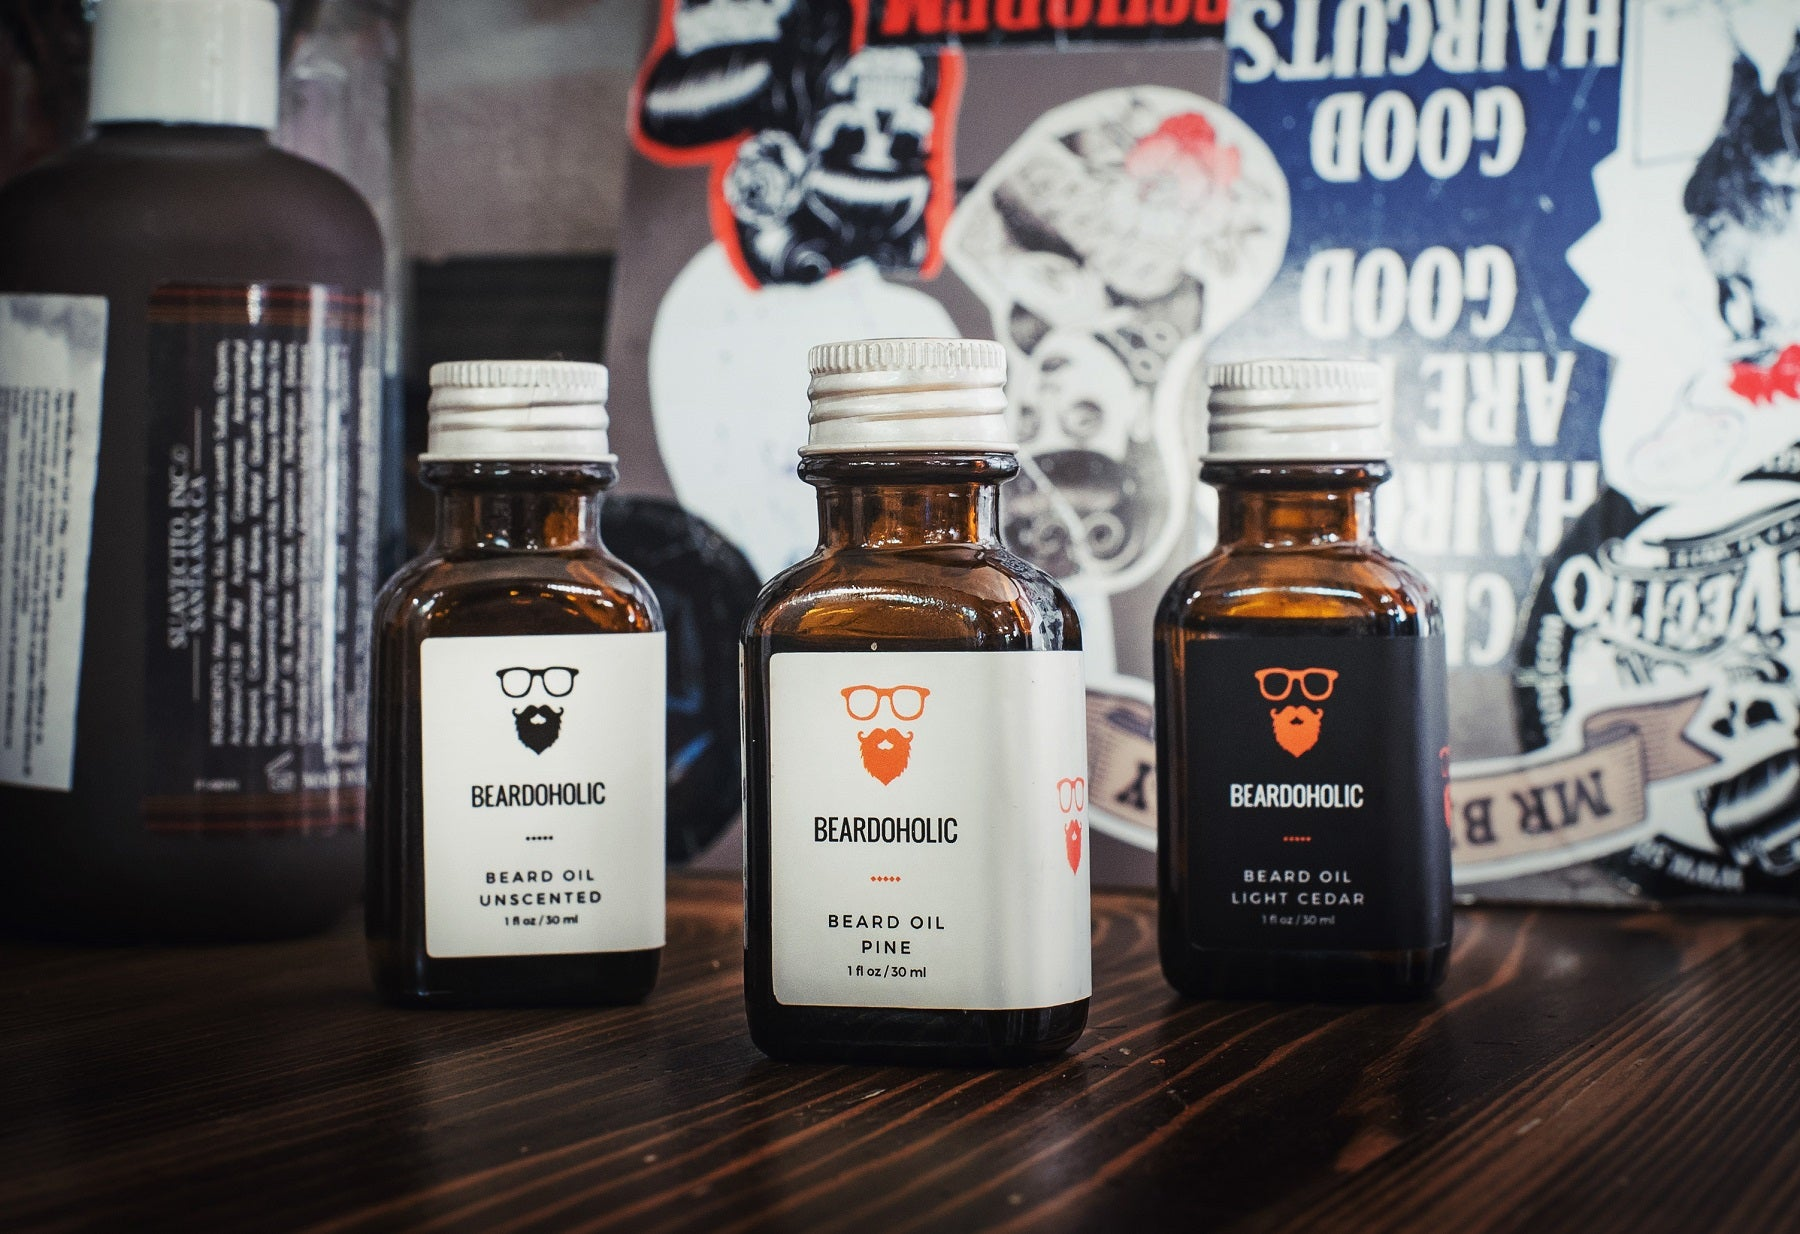 Beardoholic Beard Oil Collection - Close up